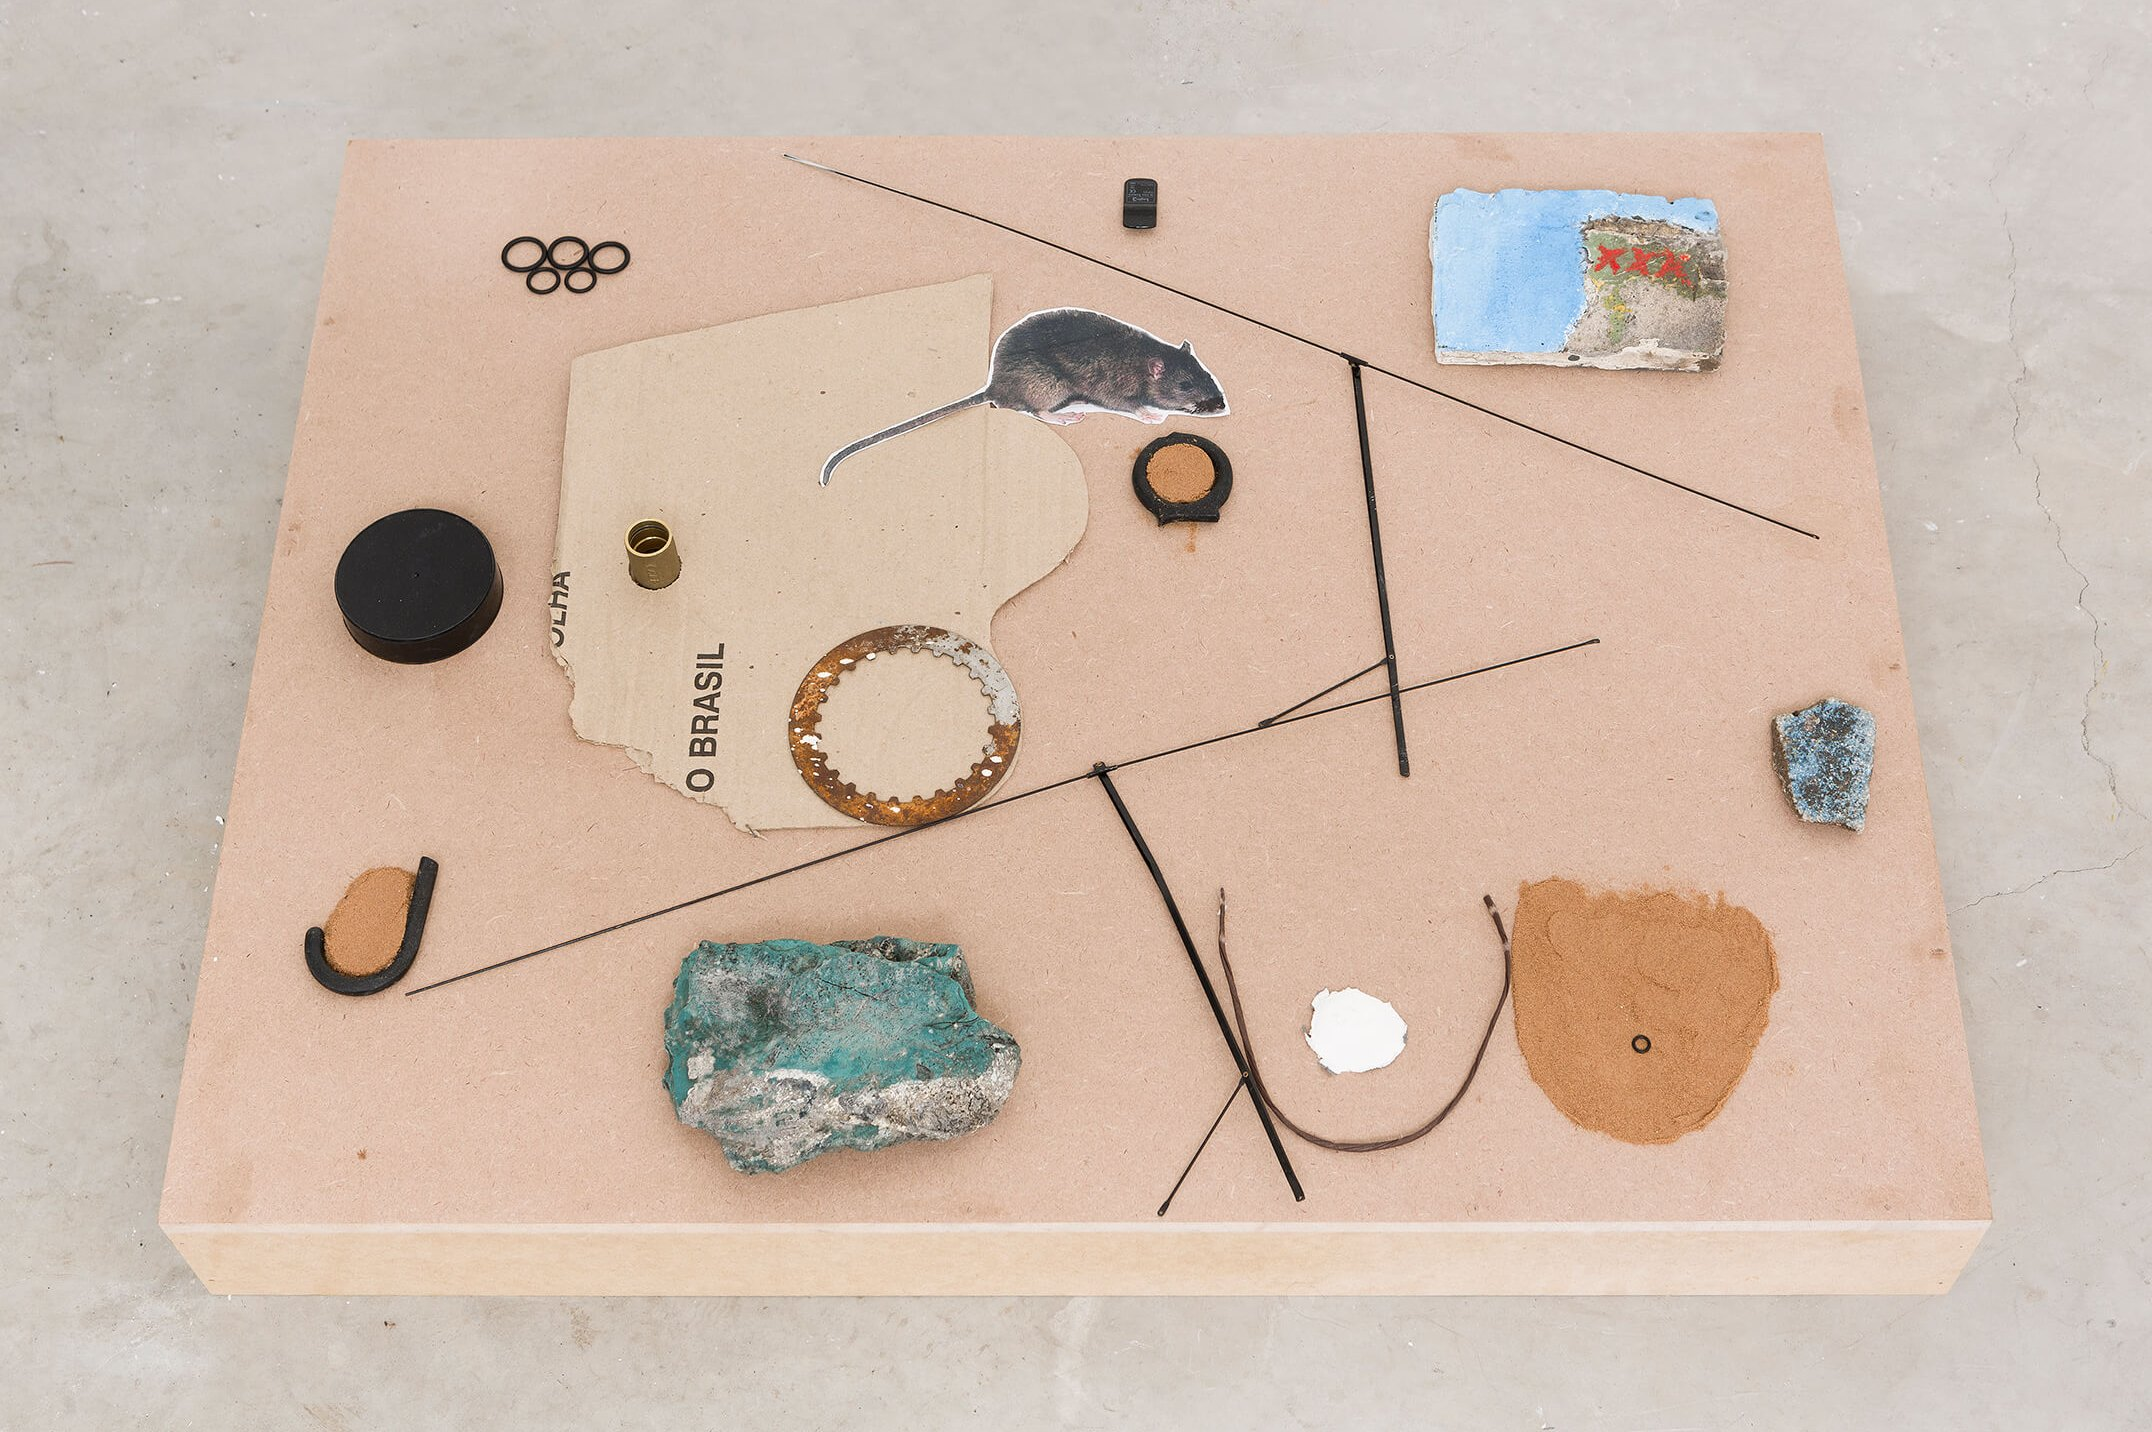 Adriano Costa, <em>Mesopotâmia CrackHouse</em>, 2015, plastic, iron, paper, bronze, sand and acrylic on stone, cardboard and rubber, 13 × 70 × 90 cm - Mendes Wood DM